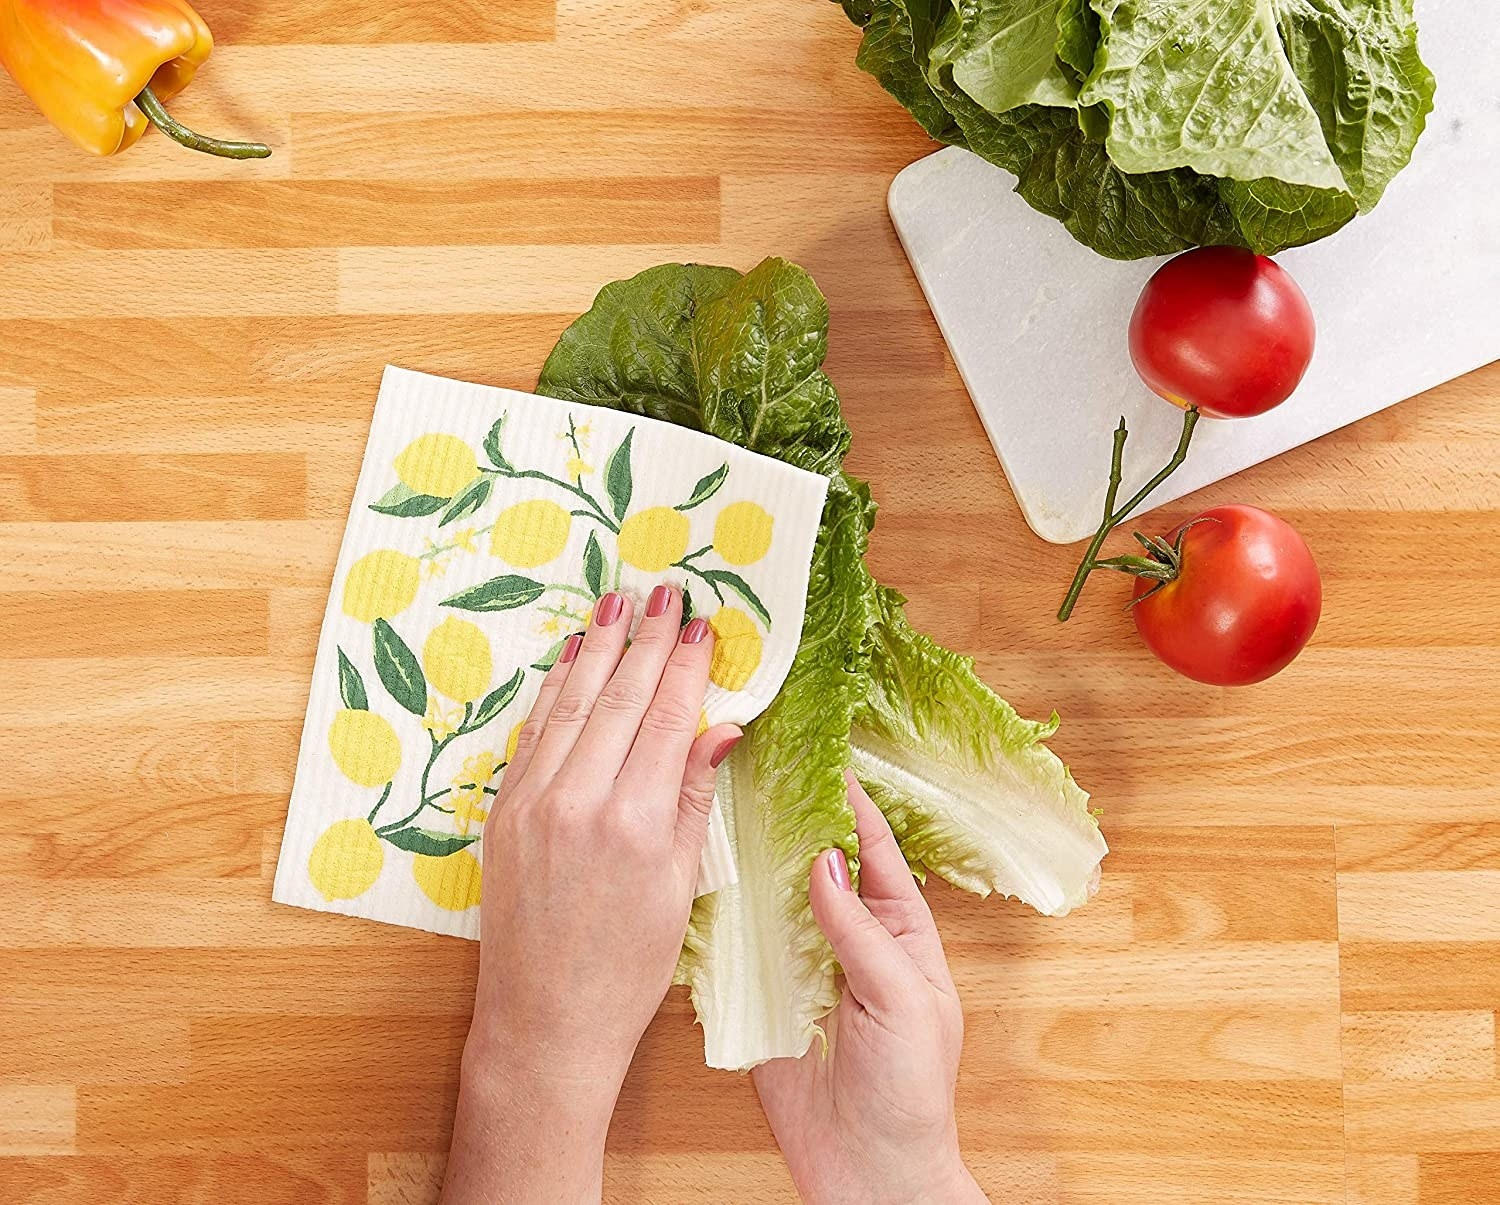 A person wiping lettuce with a dishcloth